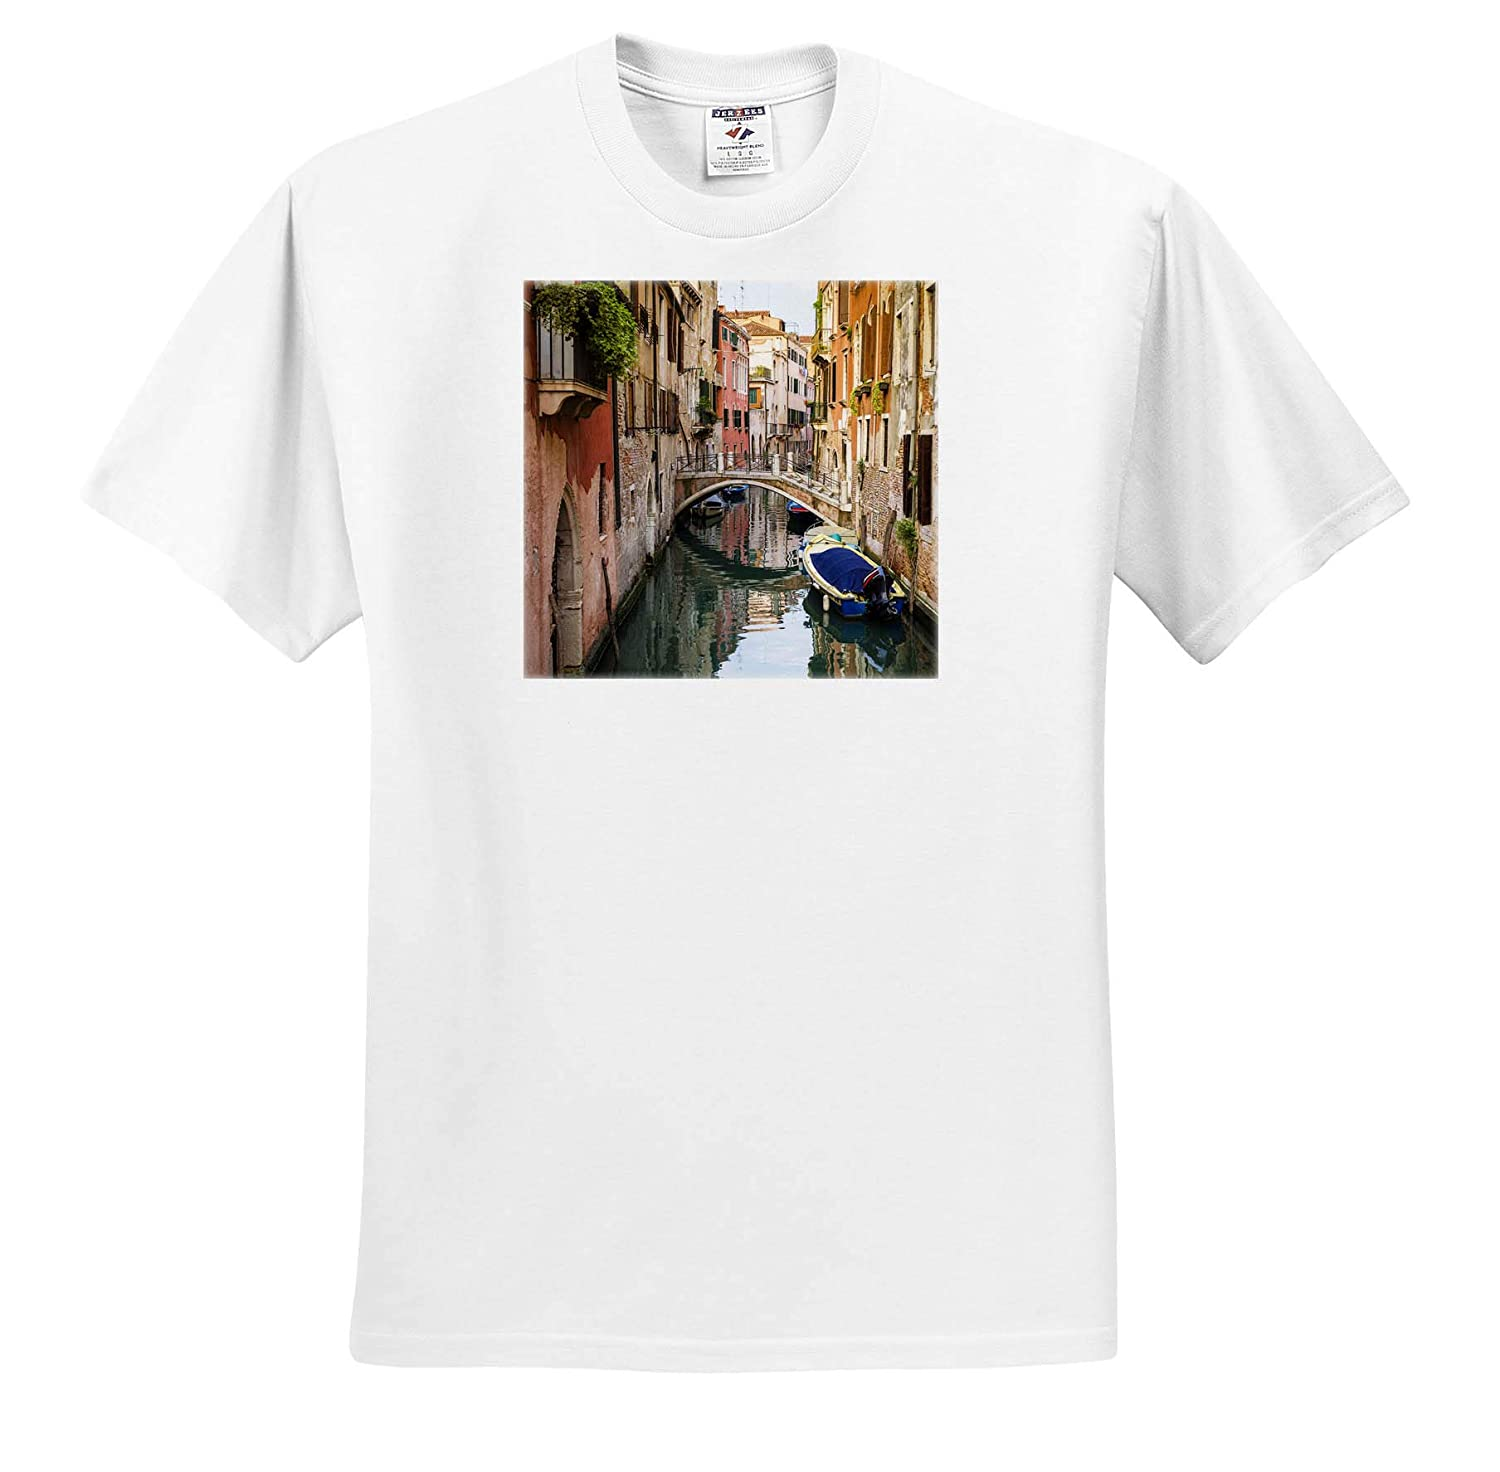 Canal and Houses ts/_313740 Adult T-Shirt XL Venice Veneto Italy Bridge and Boats Venice 3dRose Danita Delimont